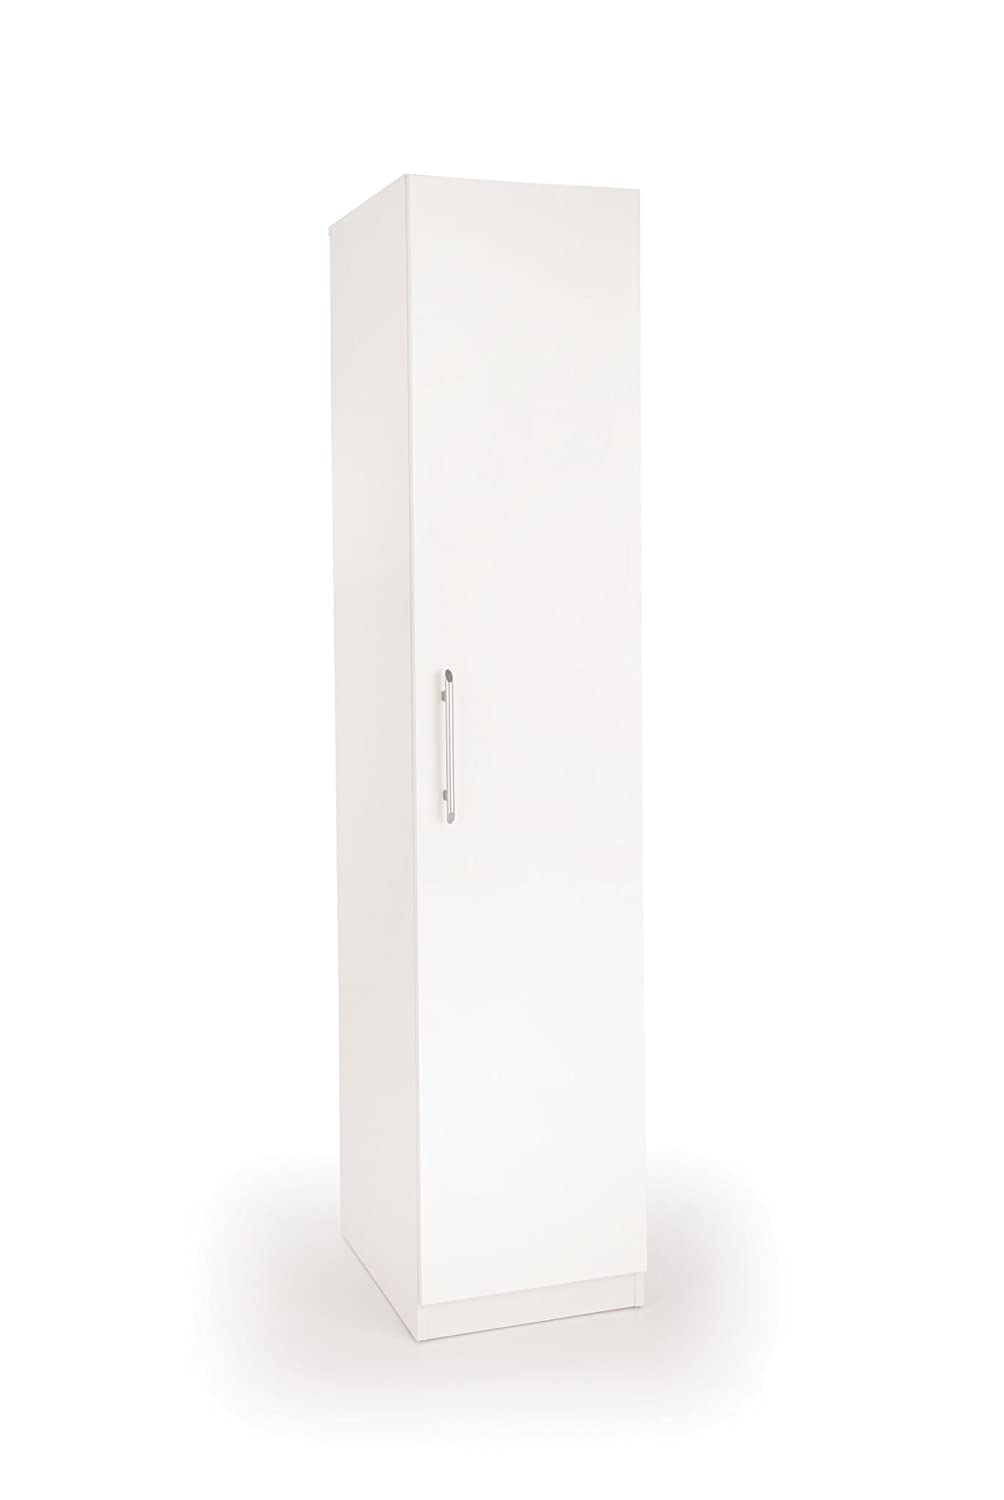 Acton 1 Door Wardrobe, Wood, White/White Harmony H151216